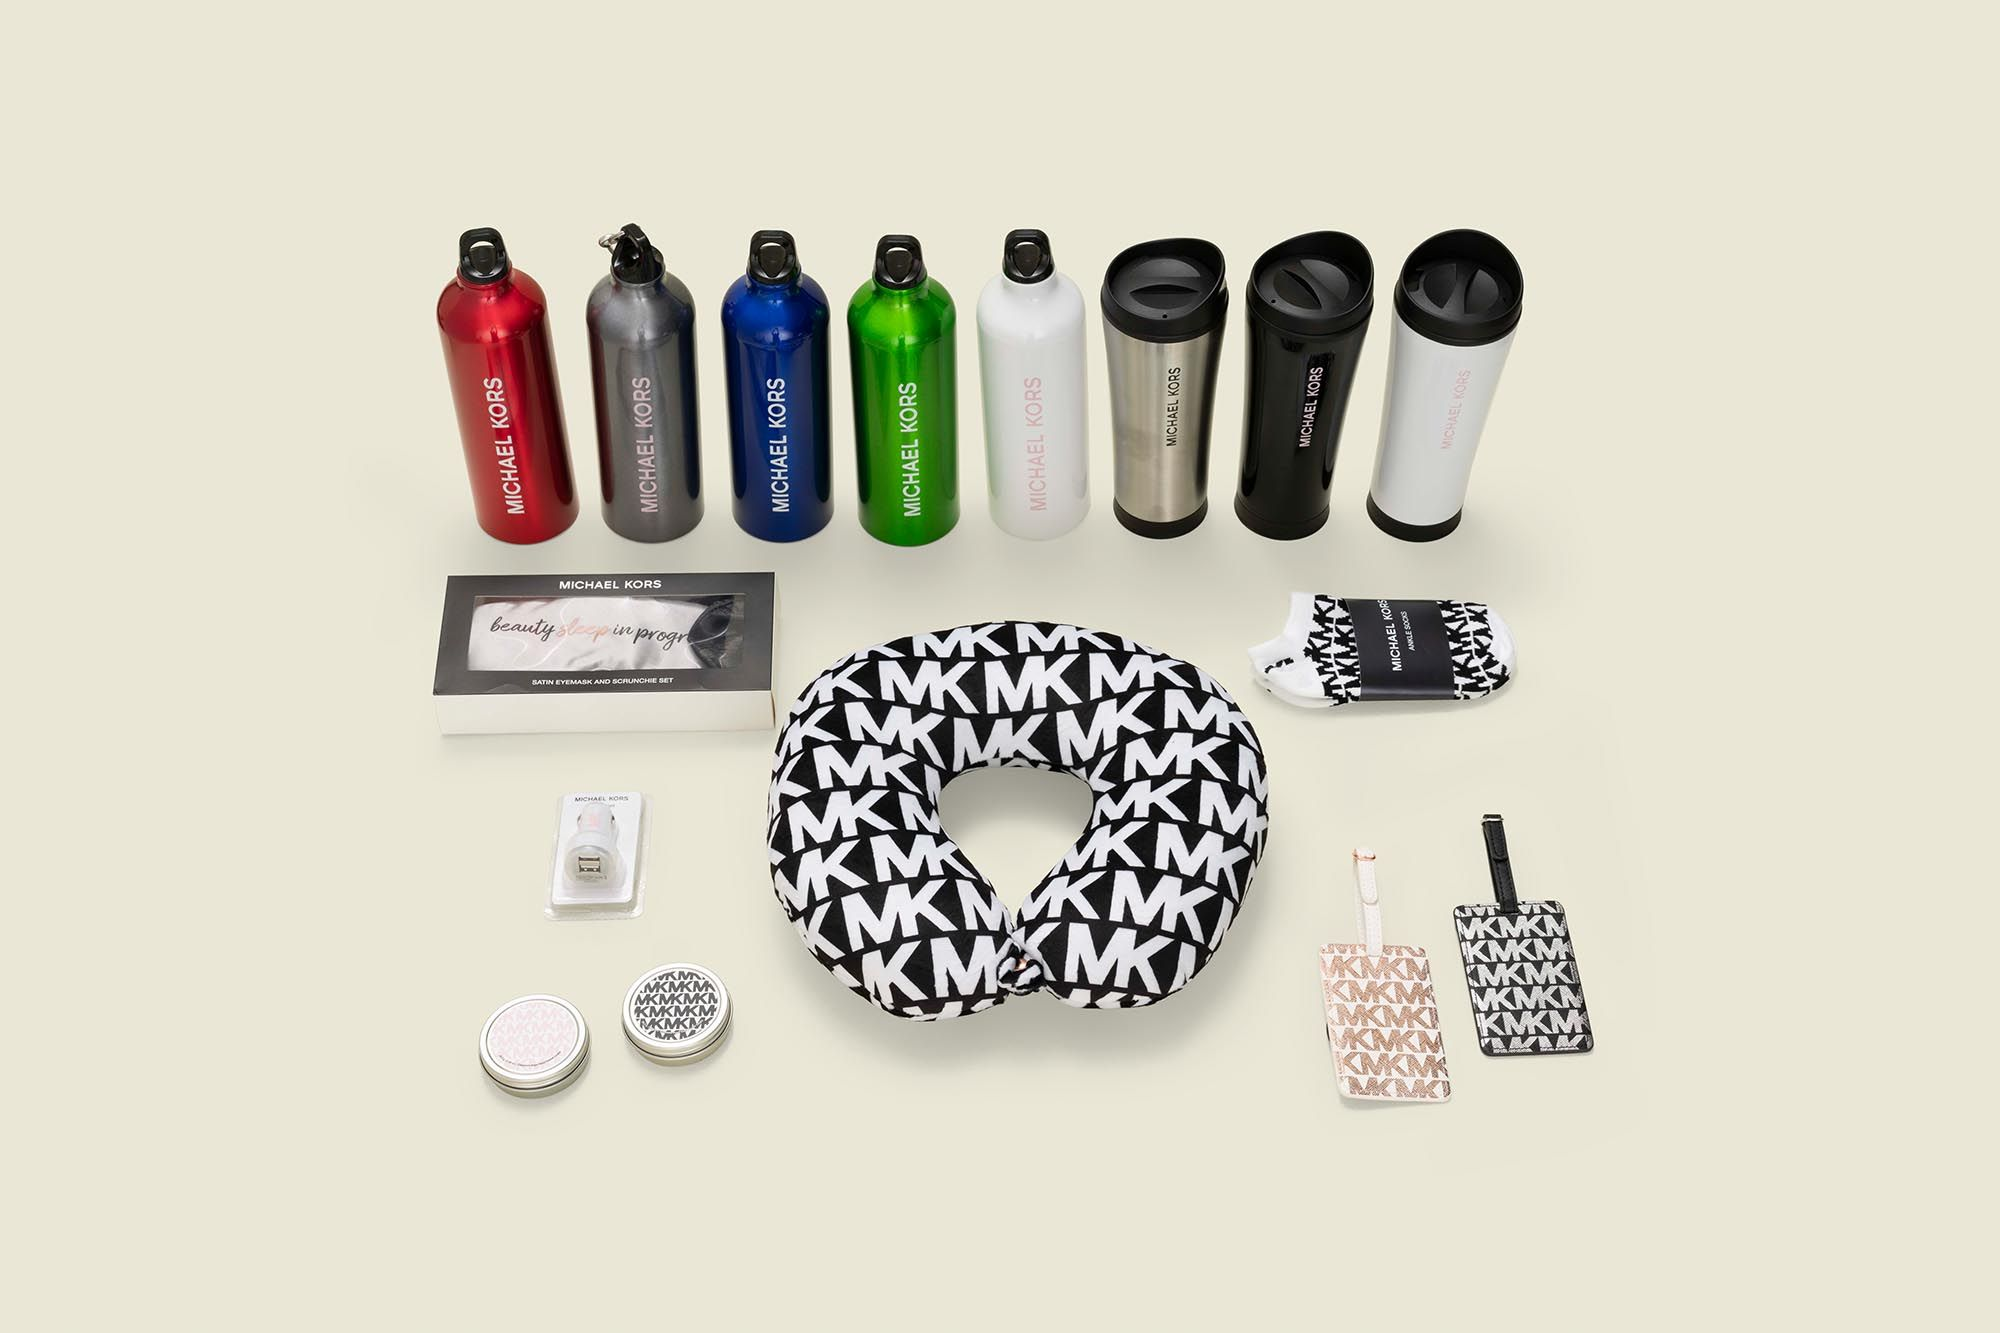 Collection of water bottles, a neck pillow, nah tags, candles, socks, car charger port and sleep mask